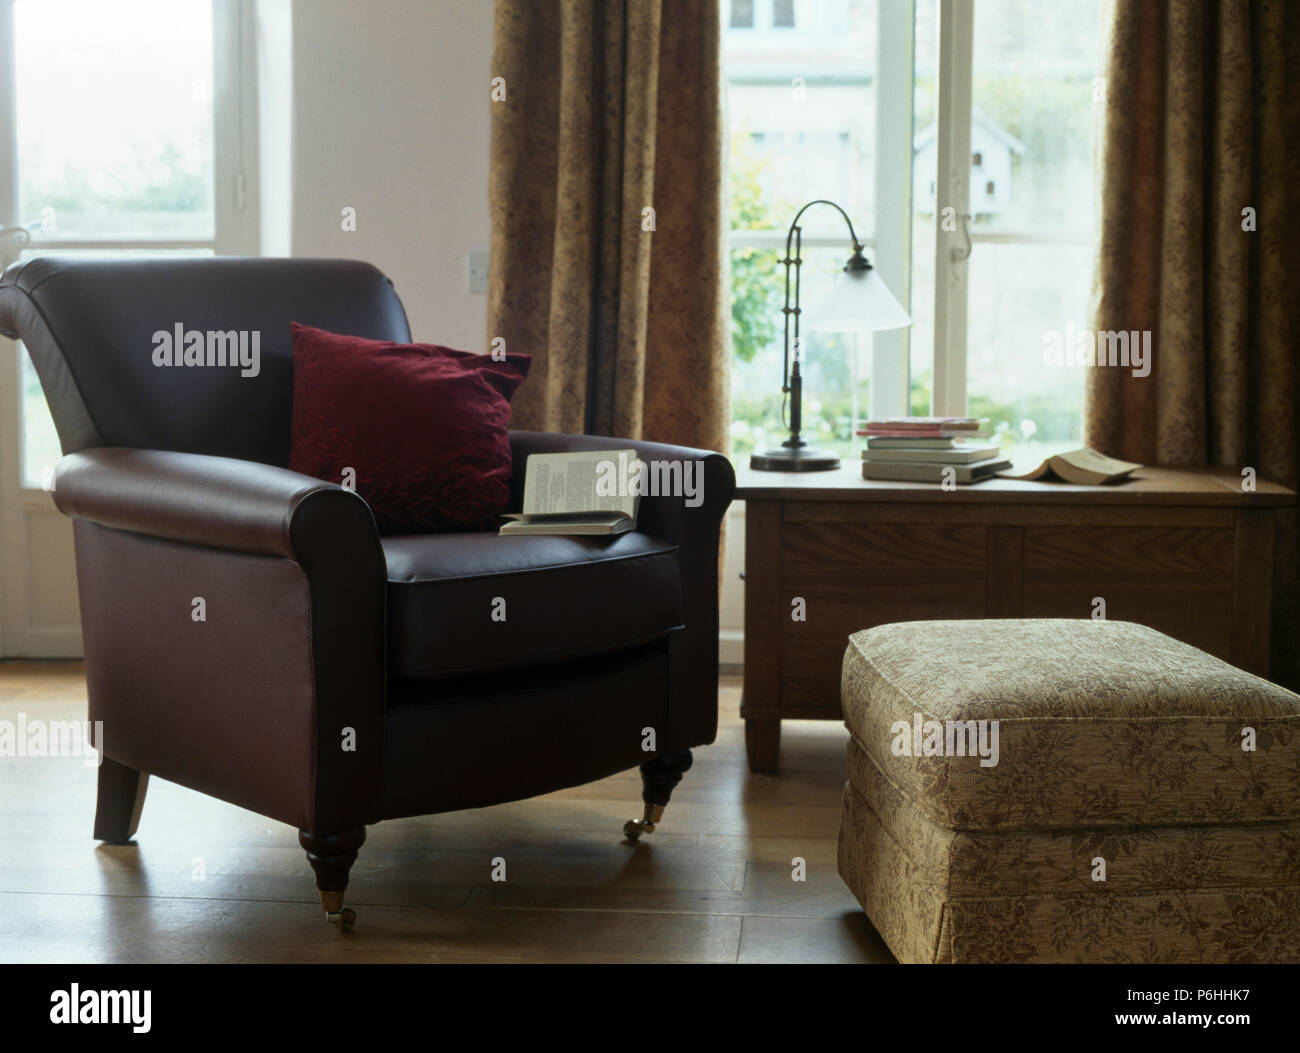 Brown leather armchair and beige ottoman stool beside desk in